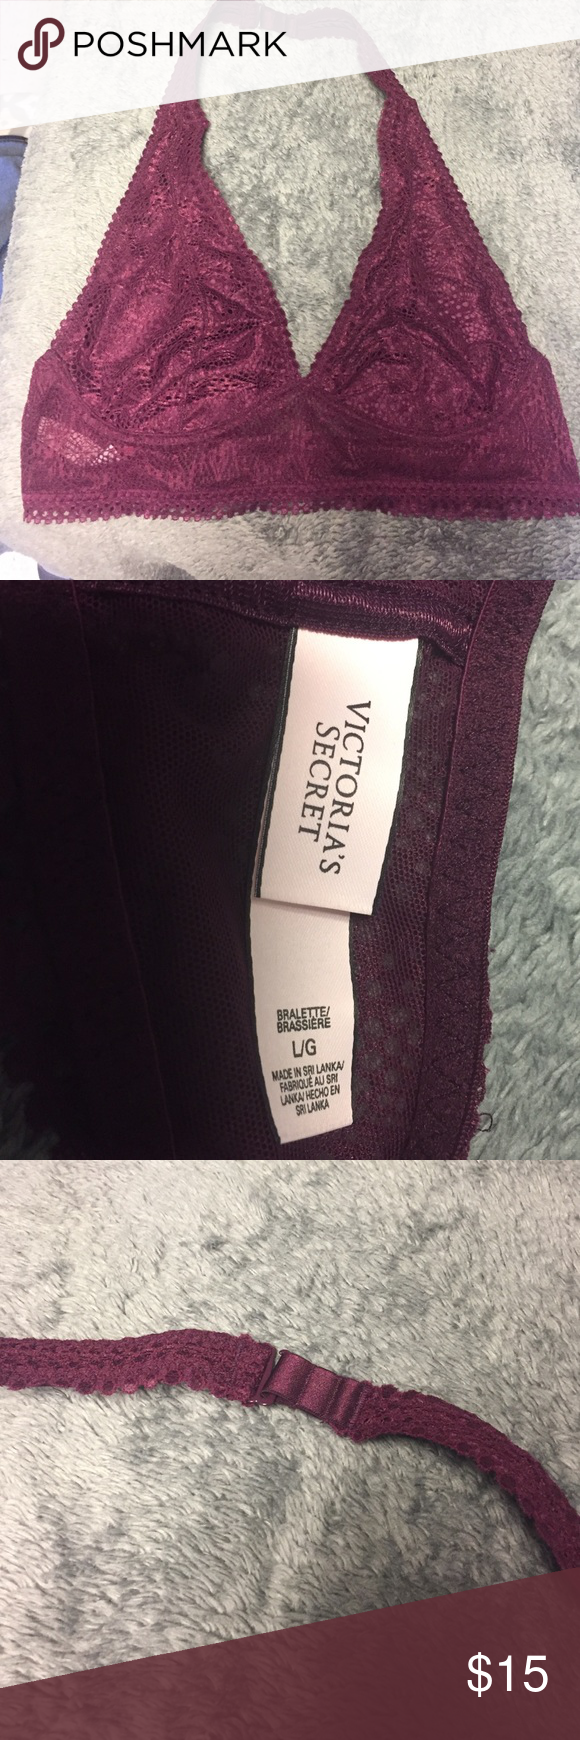 Victoria's Secret Halter Bralette Brand new, never worn burgundy bralette. No tags because I bought online. Not padded and very comfortable. Victoria's Secret Intimates & Sleepwear Bras